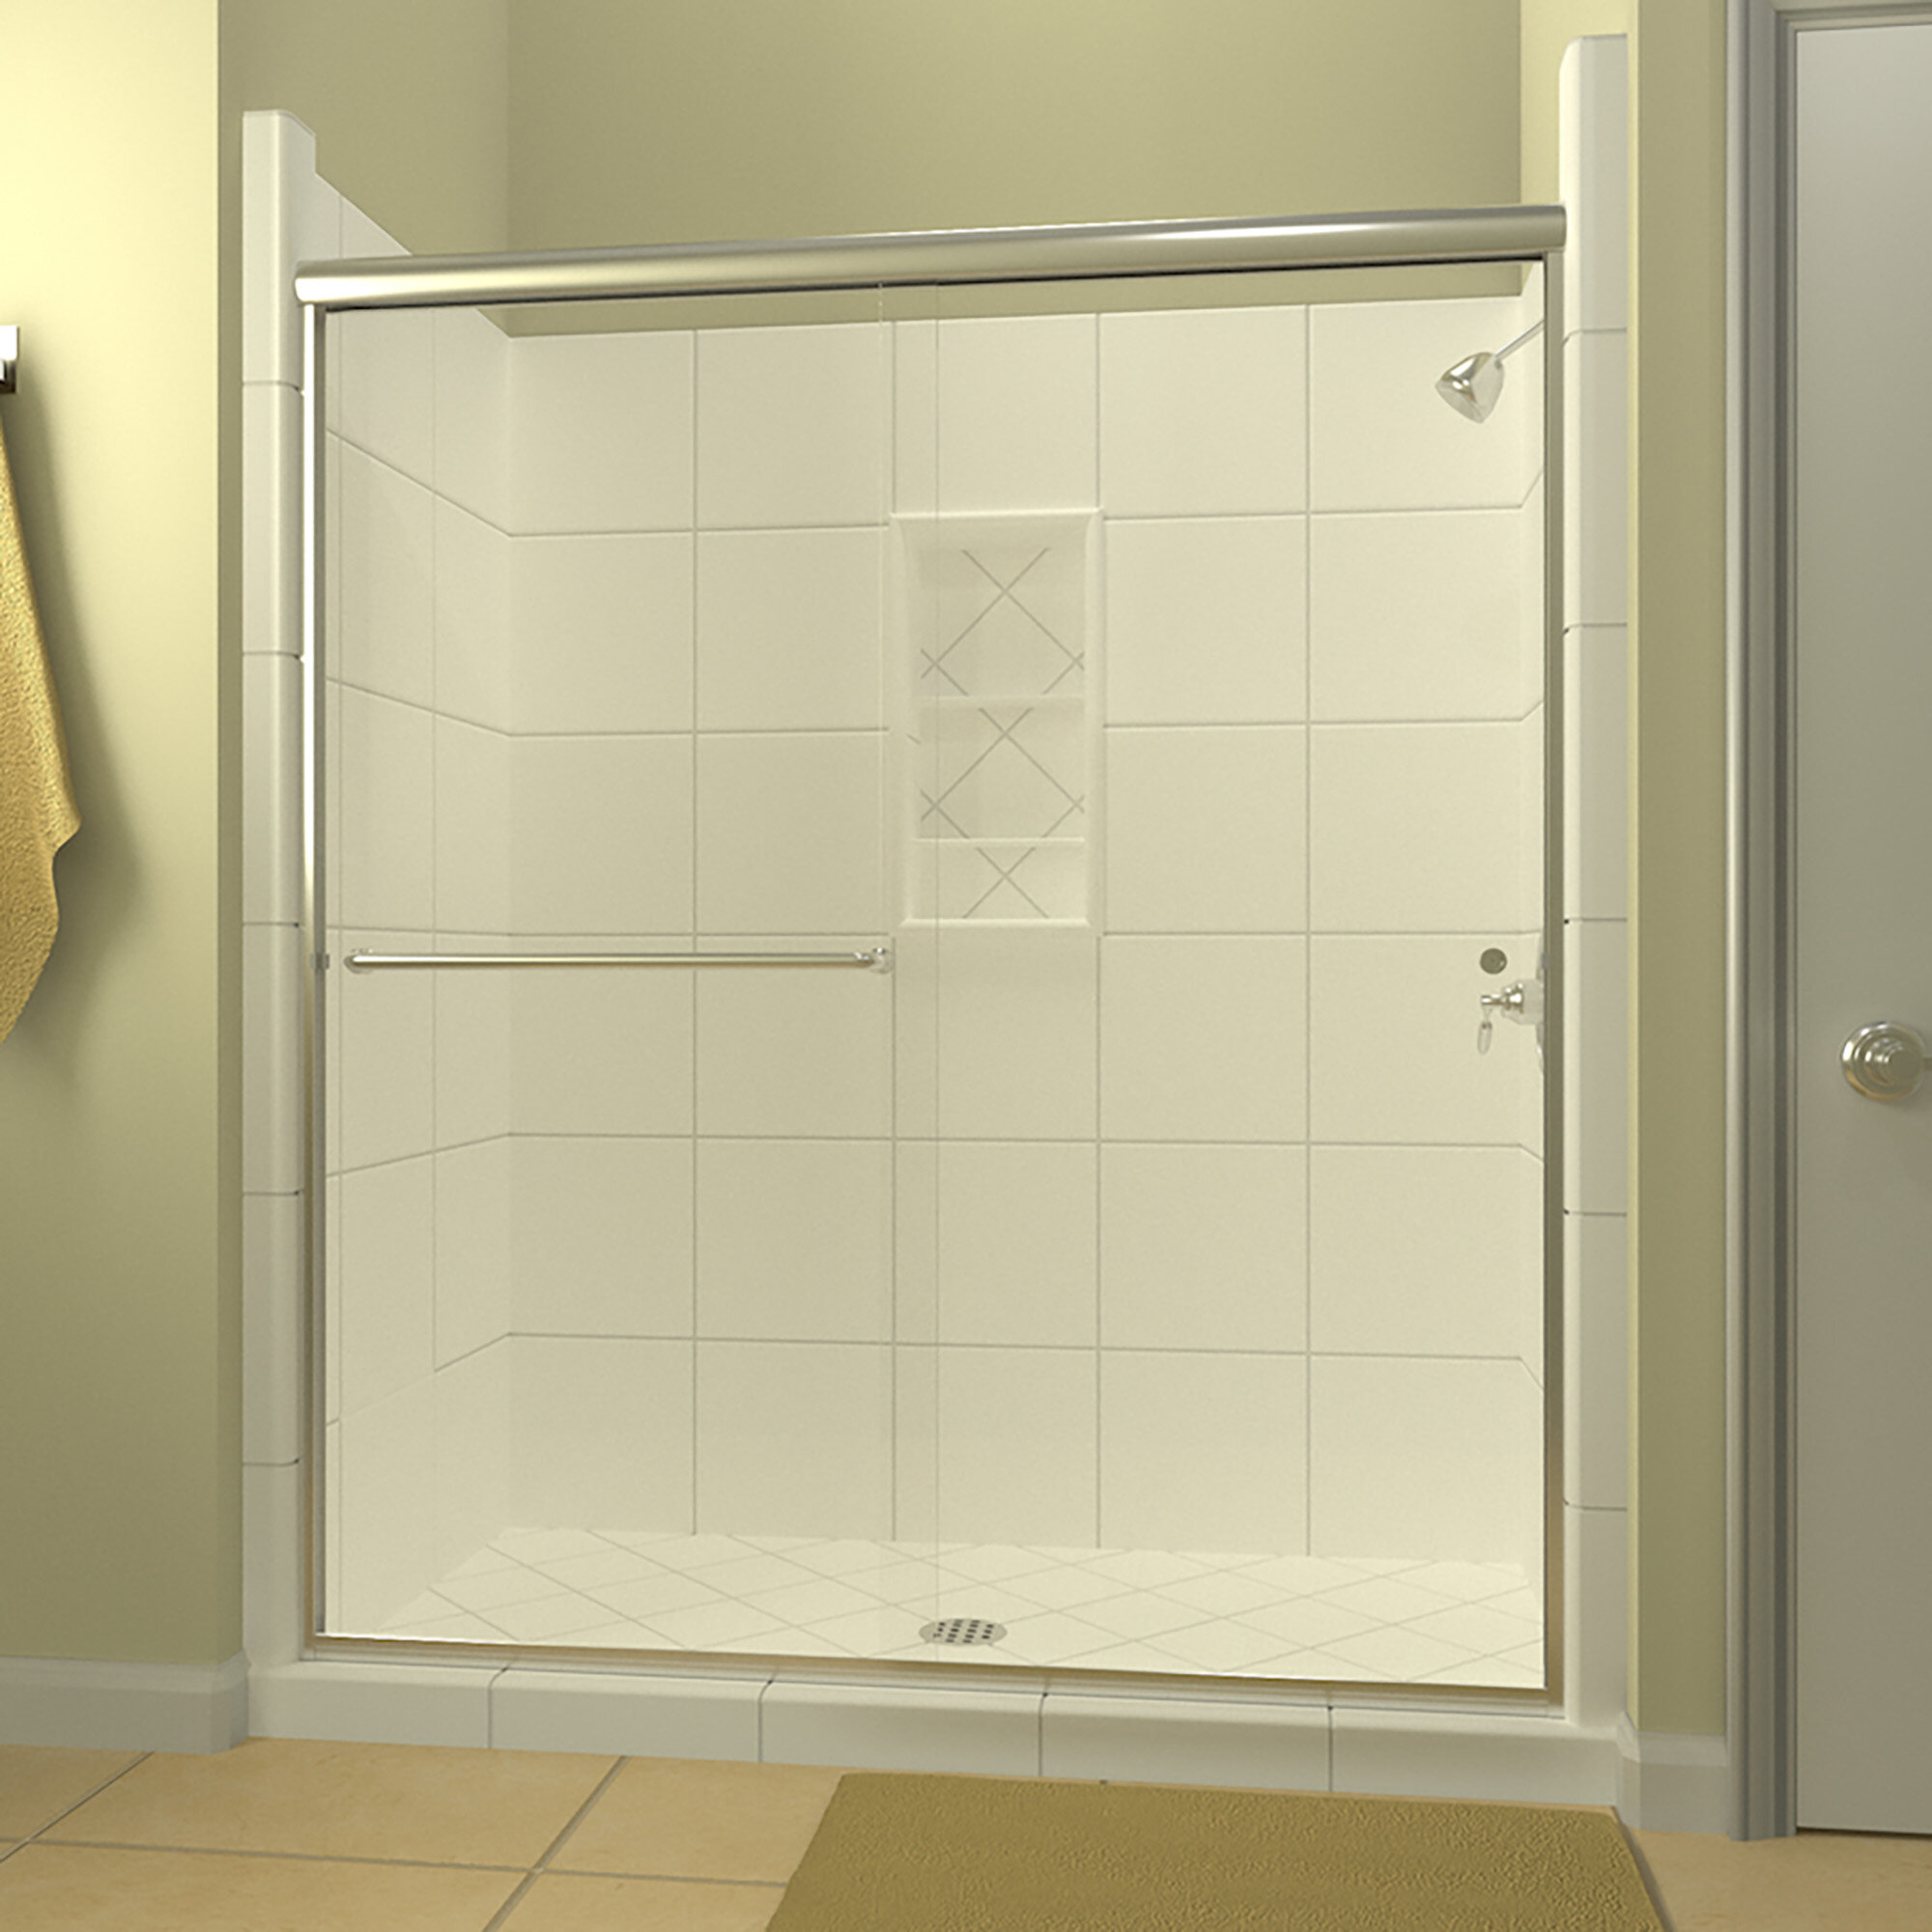 Details About Ese 60 X 76 38 Bypass Semi Frameless Shower Door Left Opening Polished Chrome